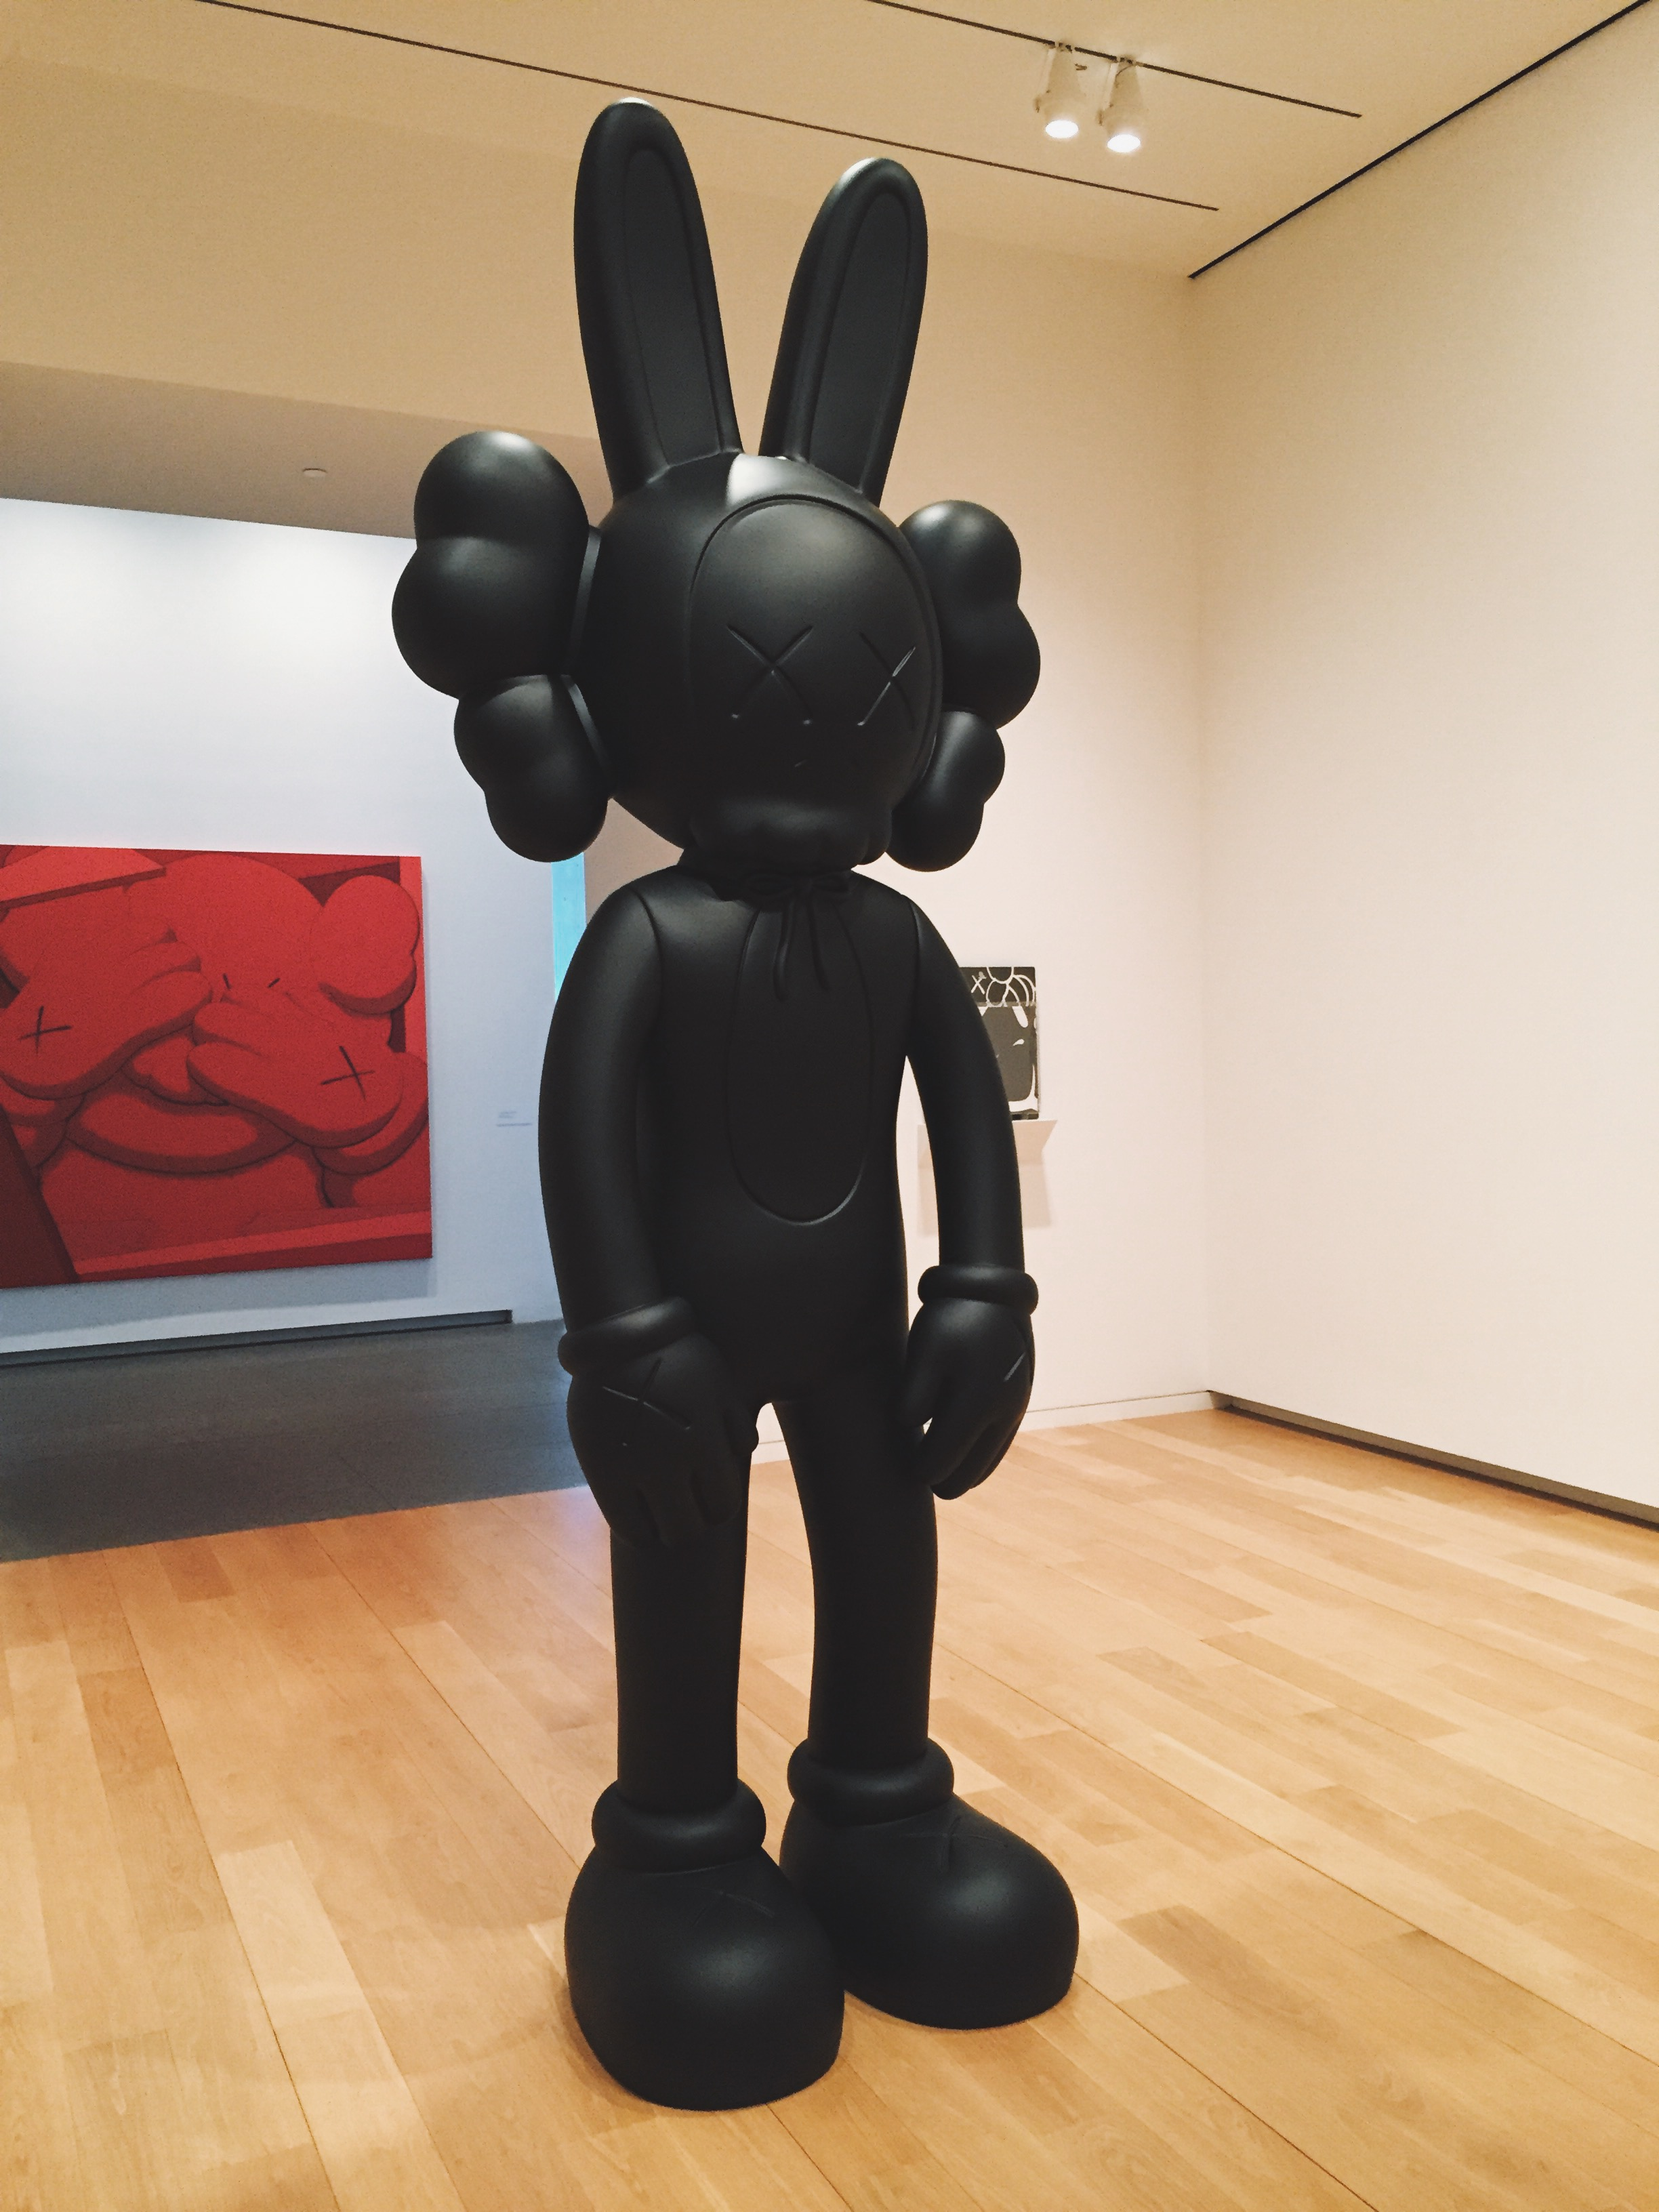 KAWS at The Modern in Fort Worth